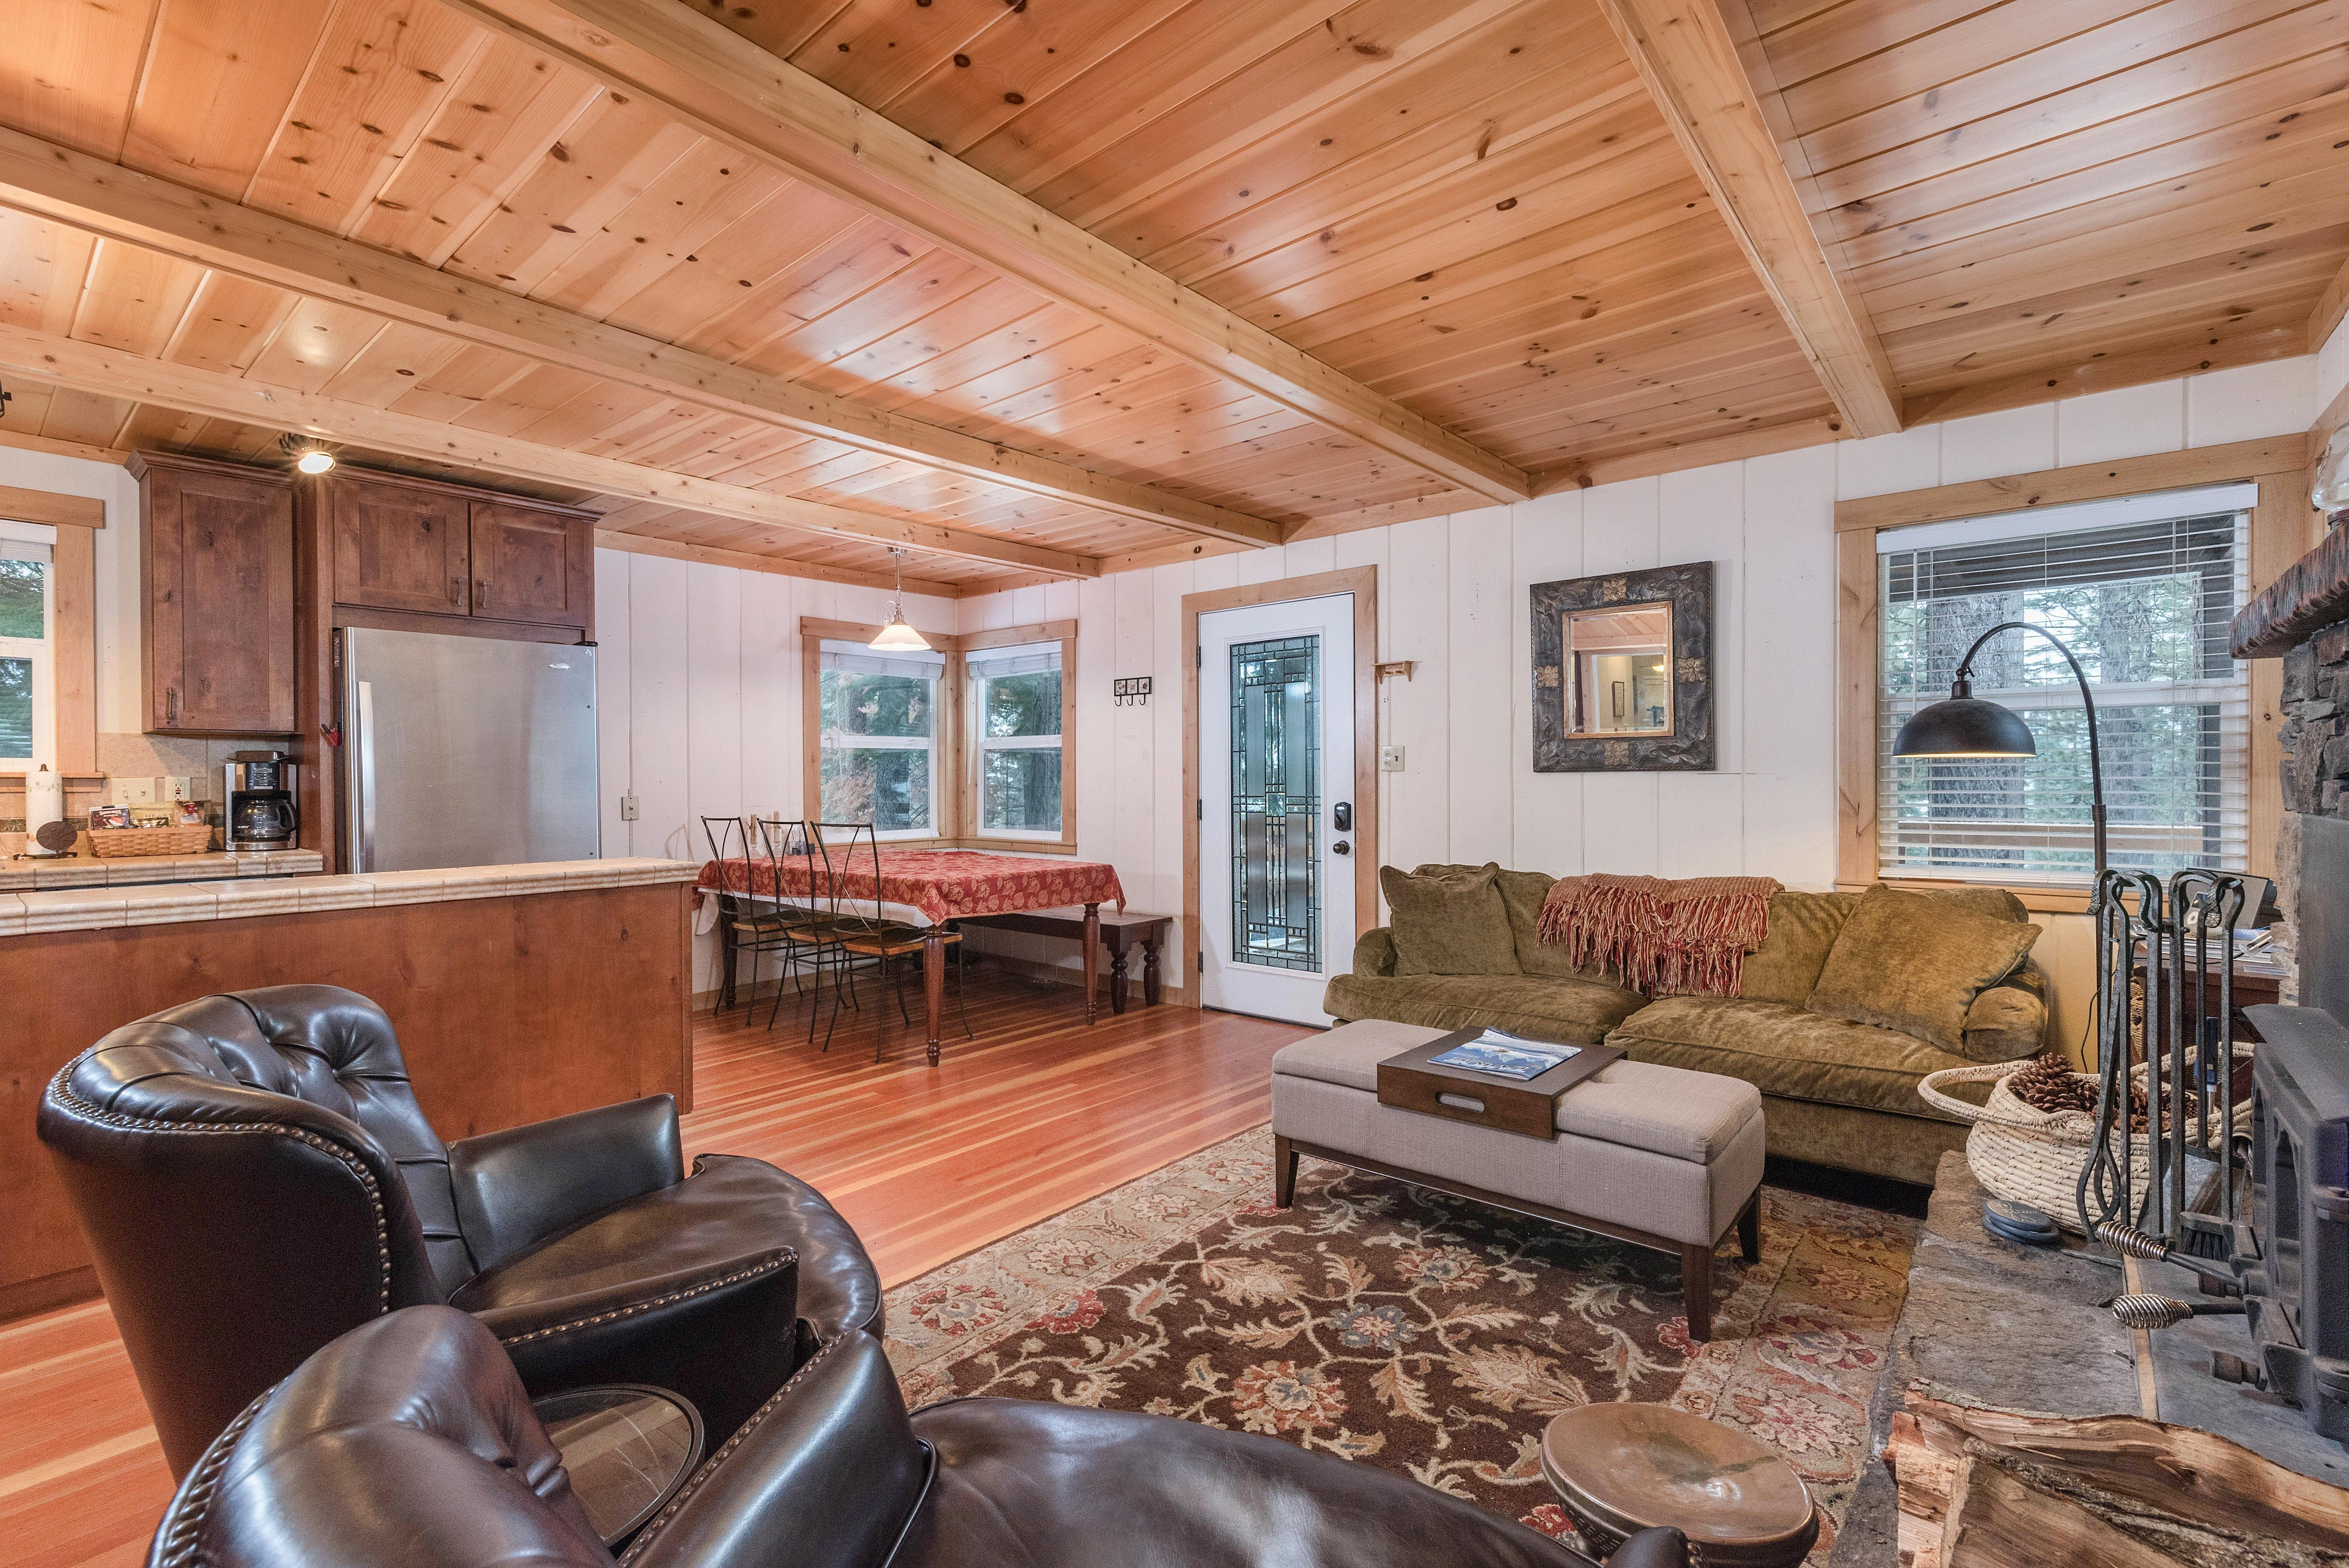 Property Image 2 - Charming Rustic Ski Lodge with Access to All Outdoor Fun